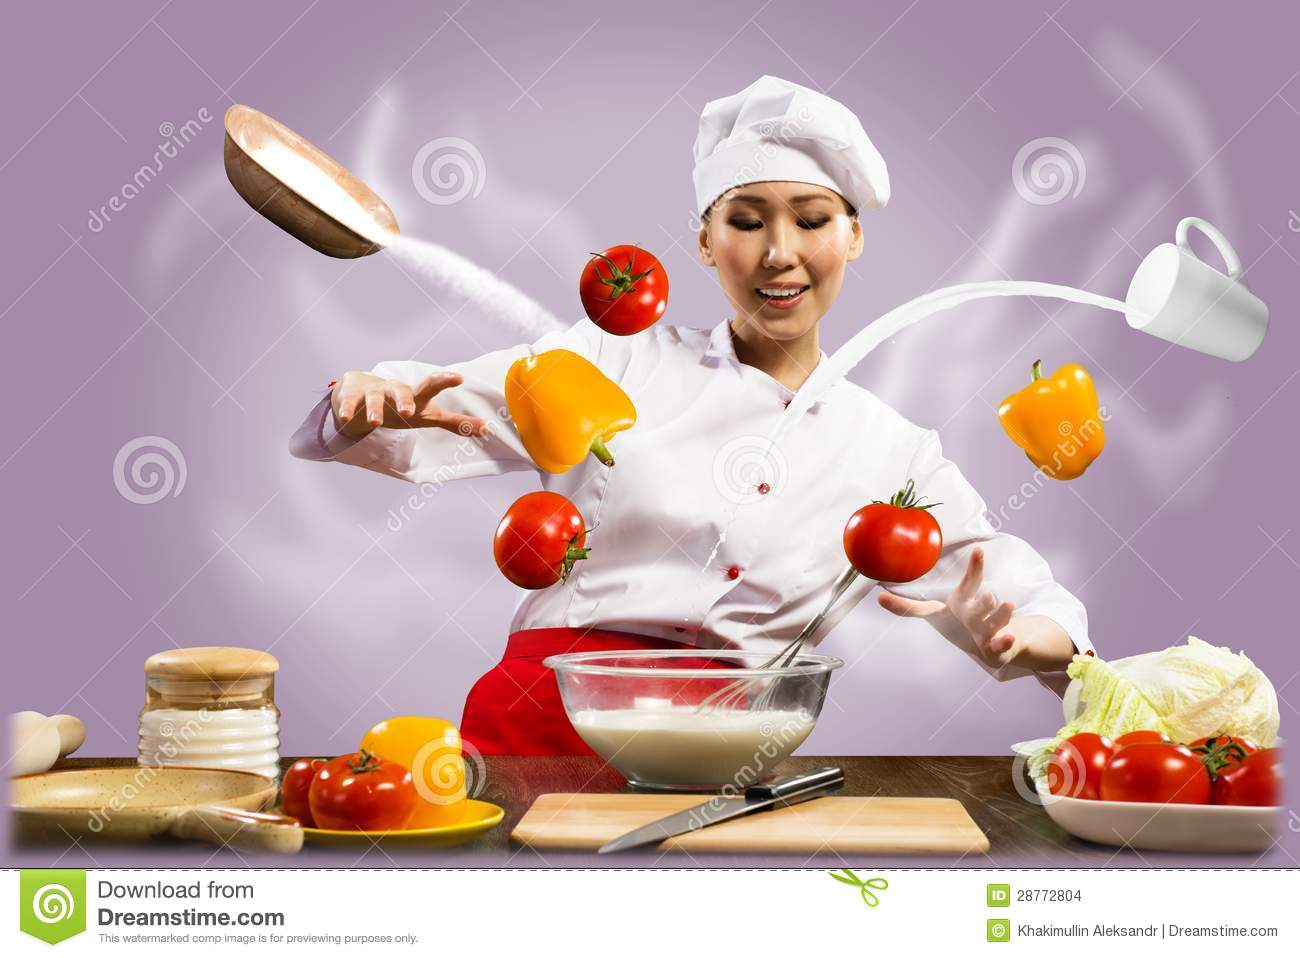 Punjabi Beautiful Girl Wallpaper Download Asian Female Chef In The Kitchen Conjures Stock Photo